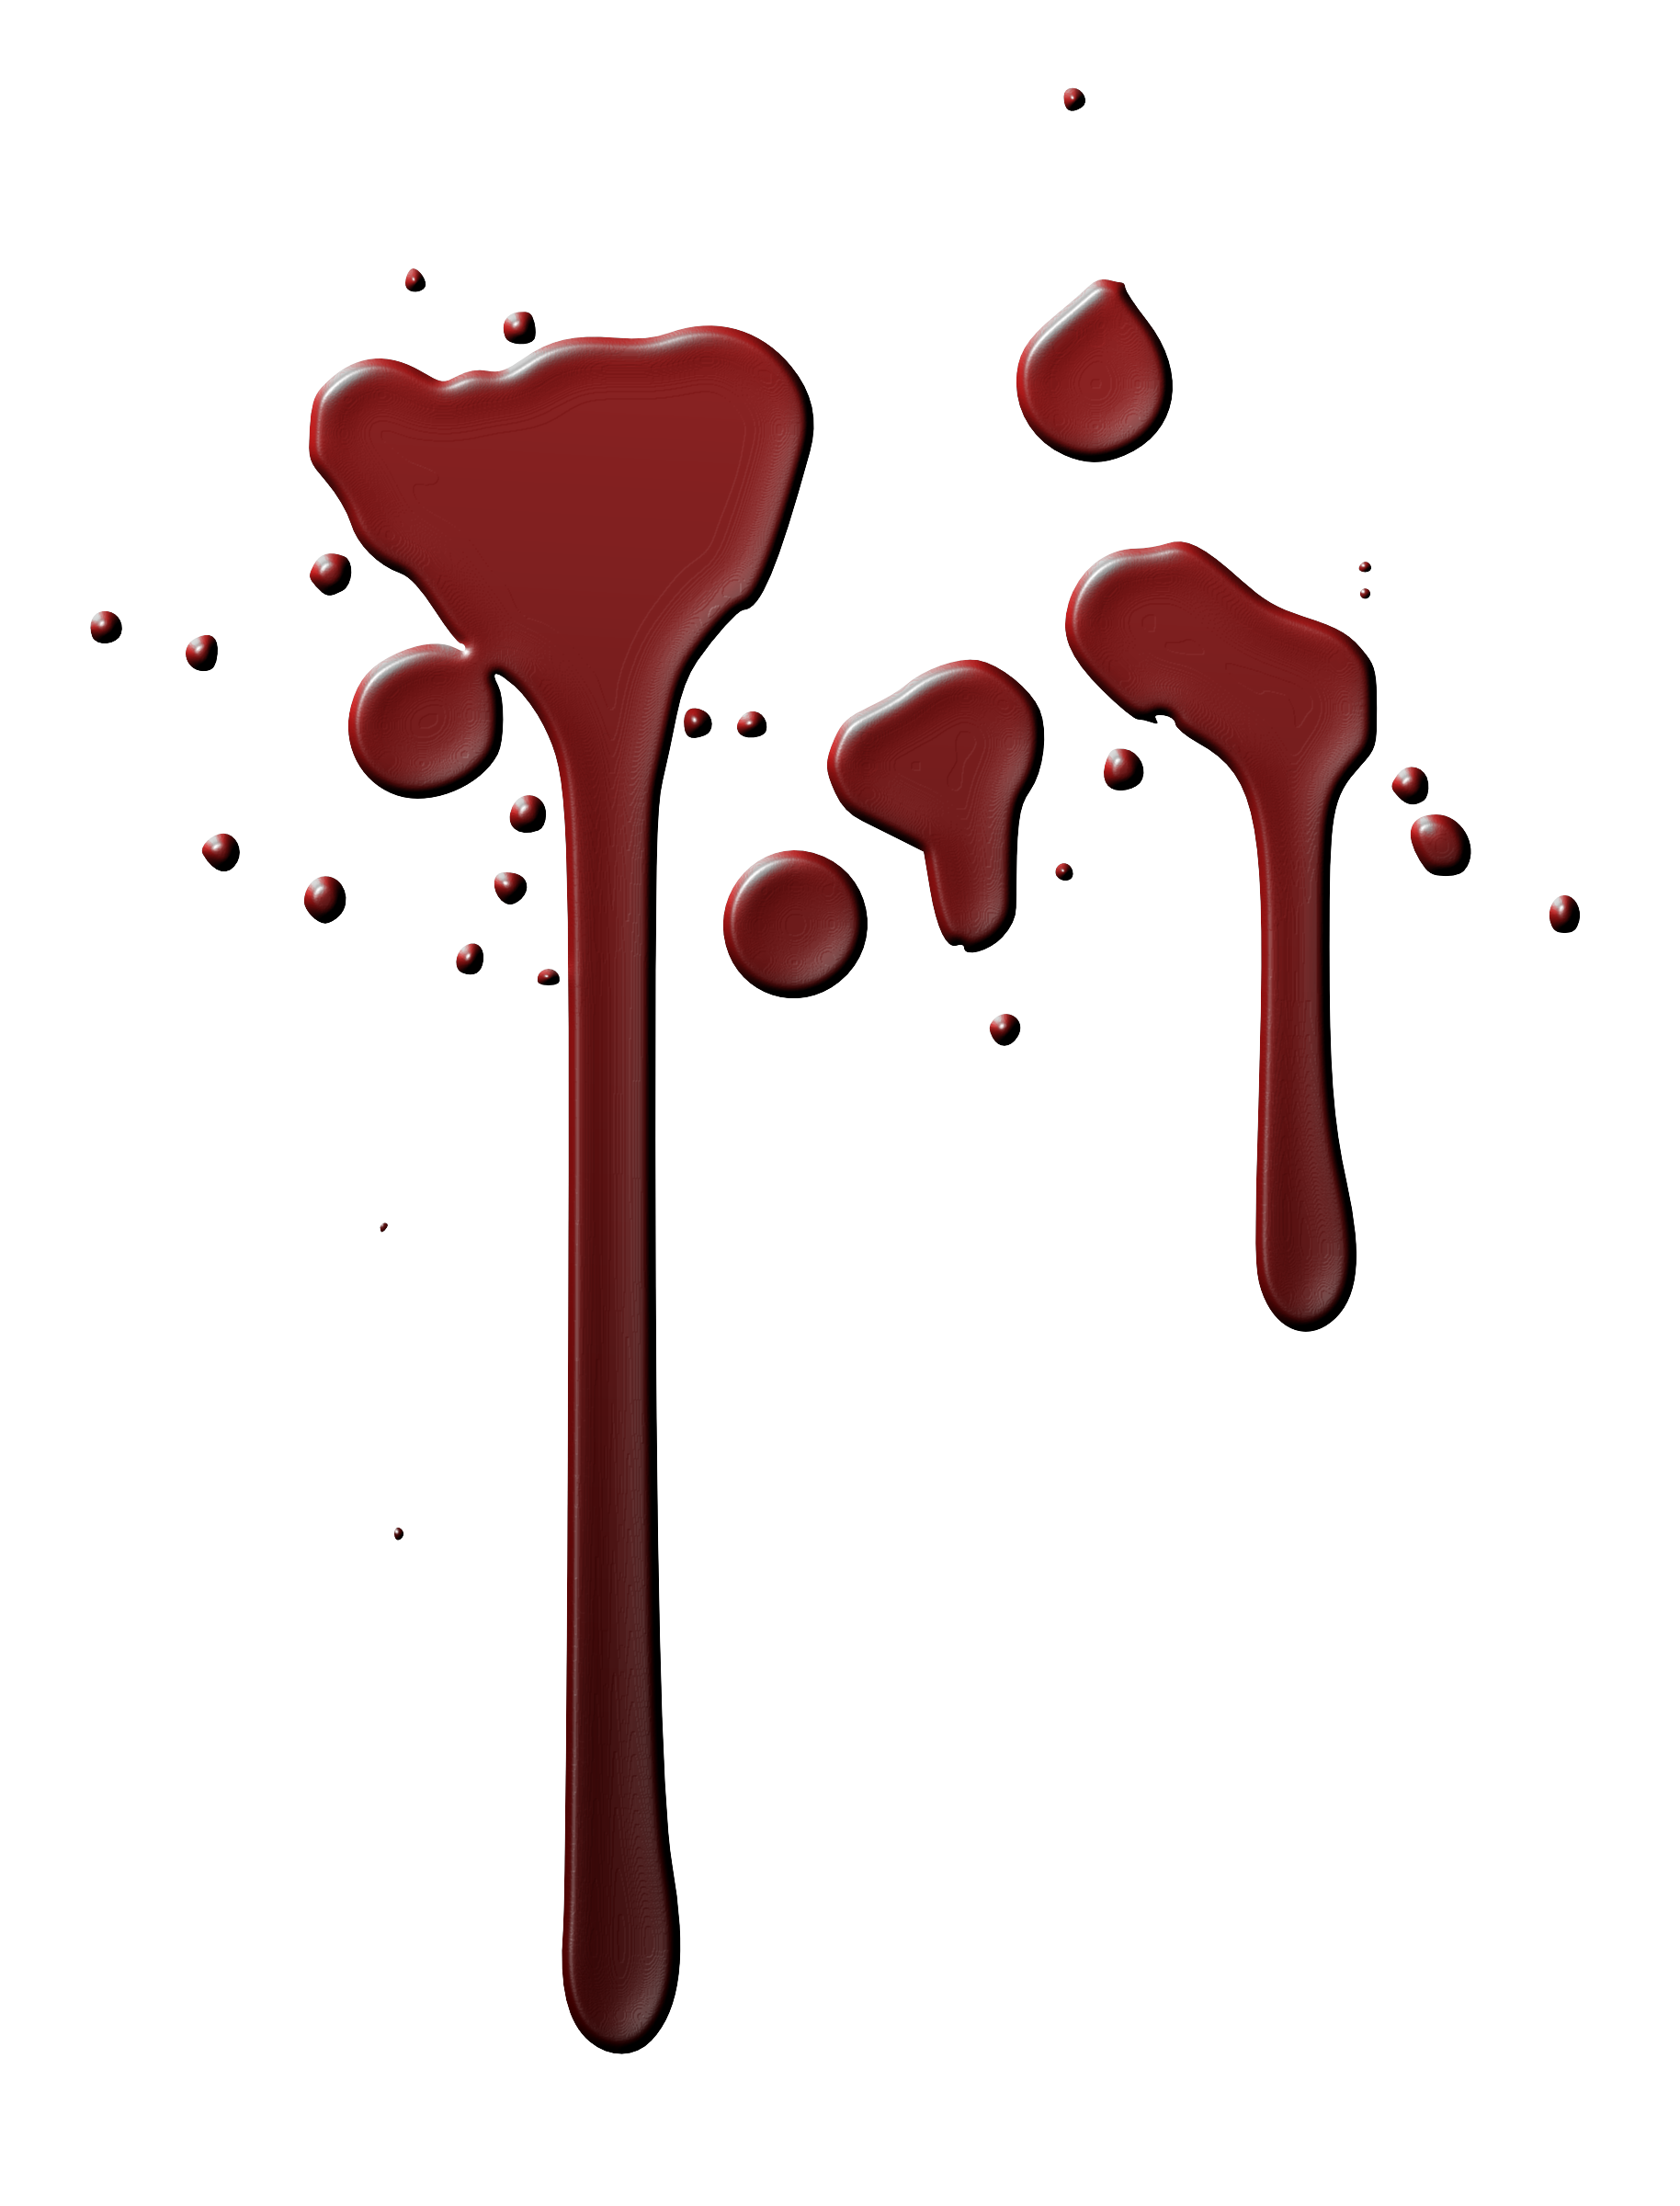 Dripping blood png. Clipart ink drop pencil